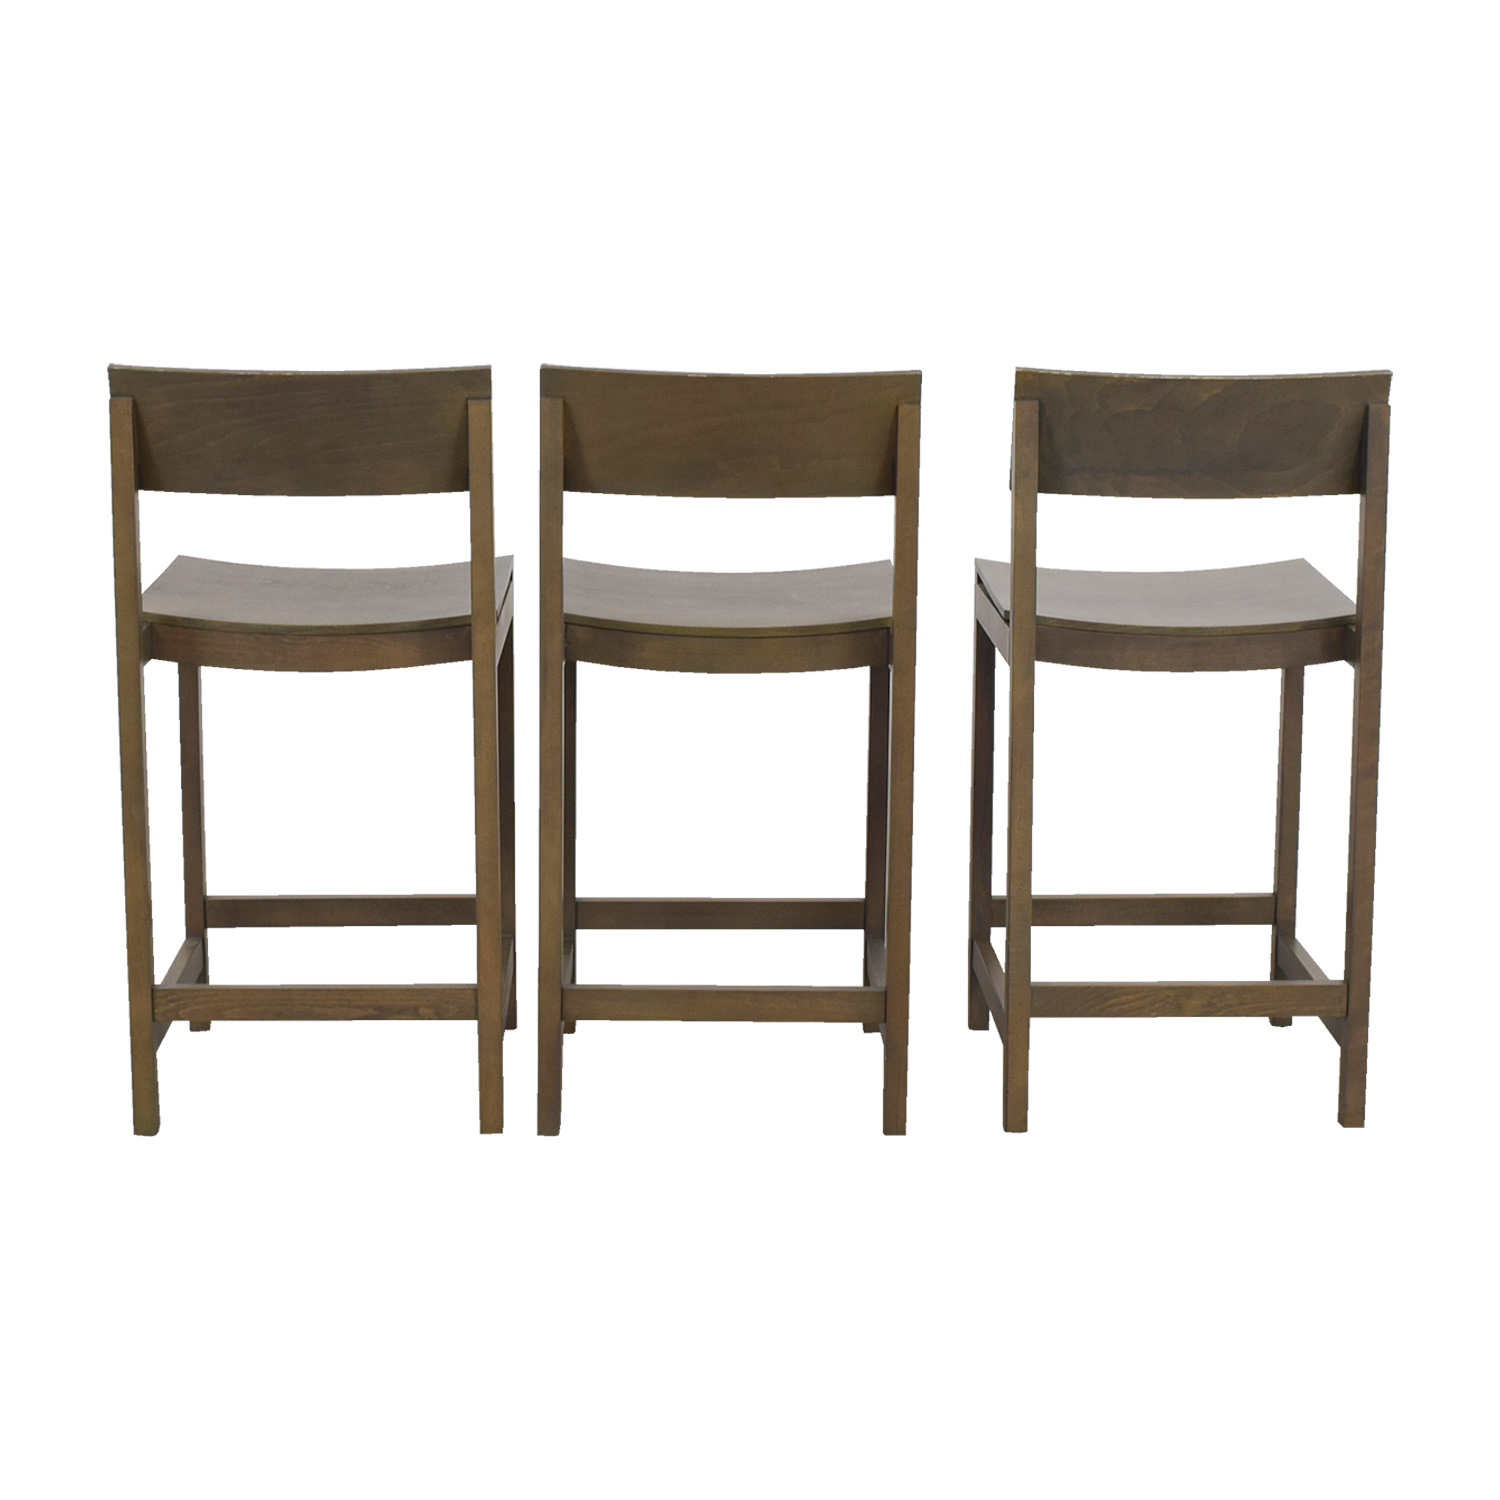 shop CB2 CB2 Slide Grey Tan Counter Stools online